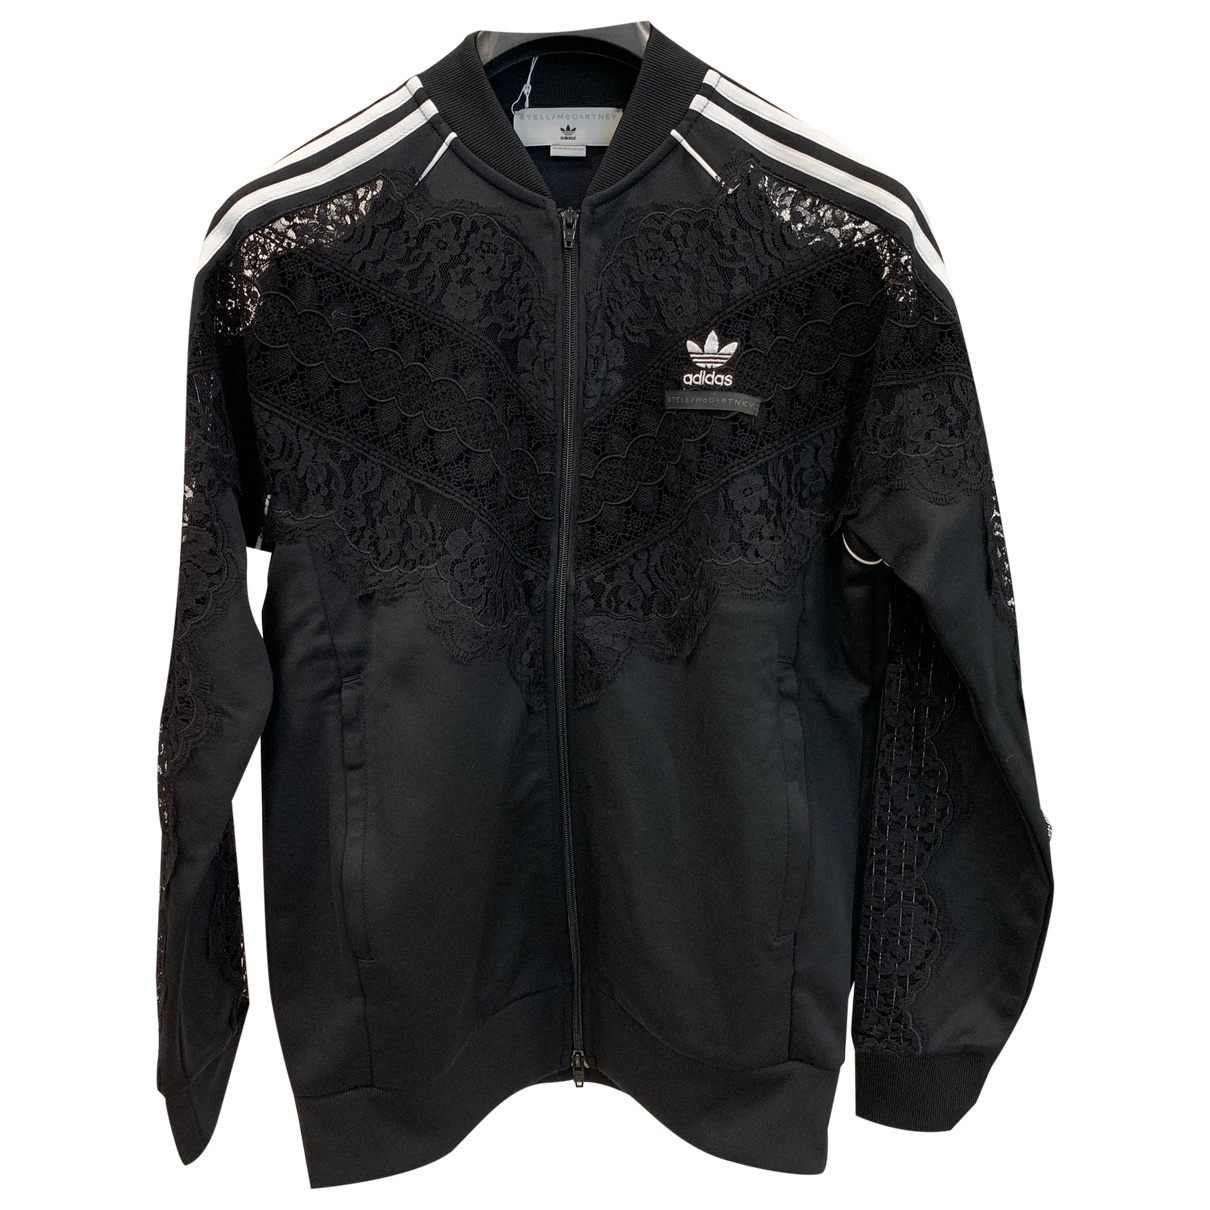 Stella Mccartney Pour Adidas \N Black jacket for Women L International